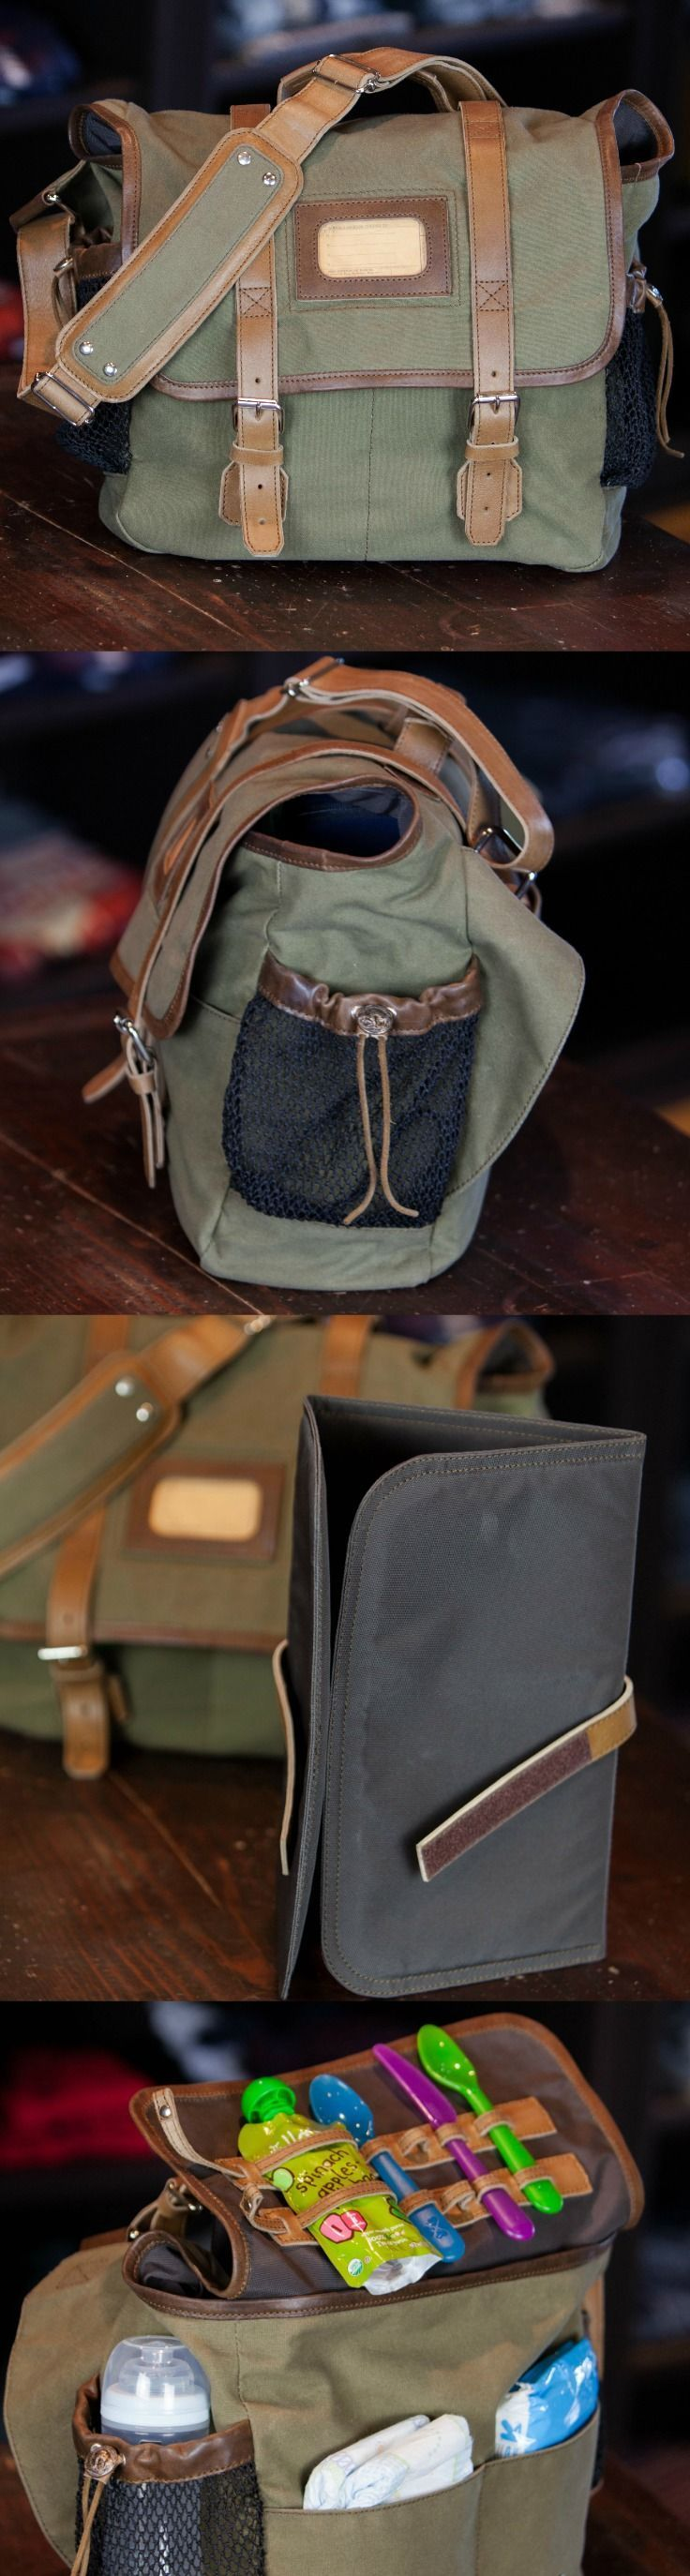 The manliest diaper bag you've ever seen. By Buffalo Jackson Trading Co.: The Elkton waxed canvas men's diaper bag. Removable nylon changing pad, adjustable leather strap. diaper bag for dad   diaper bags that don't suck